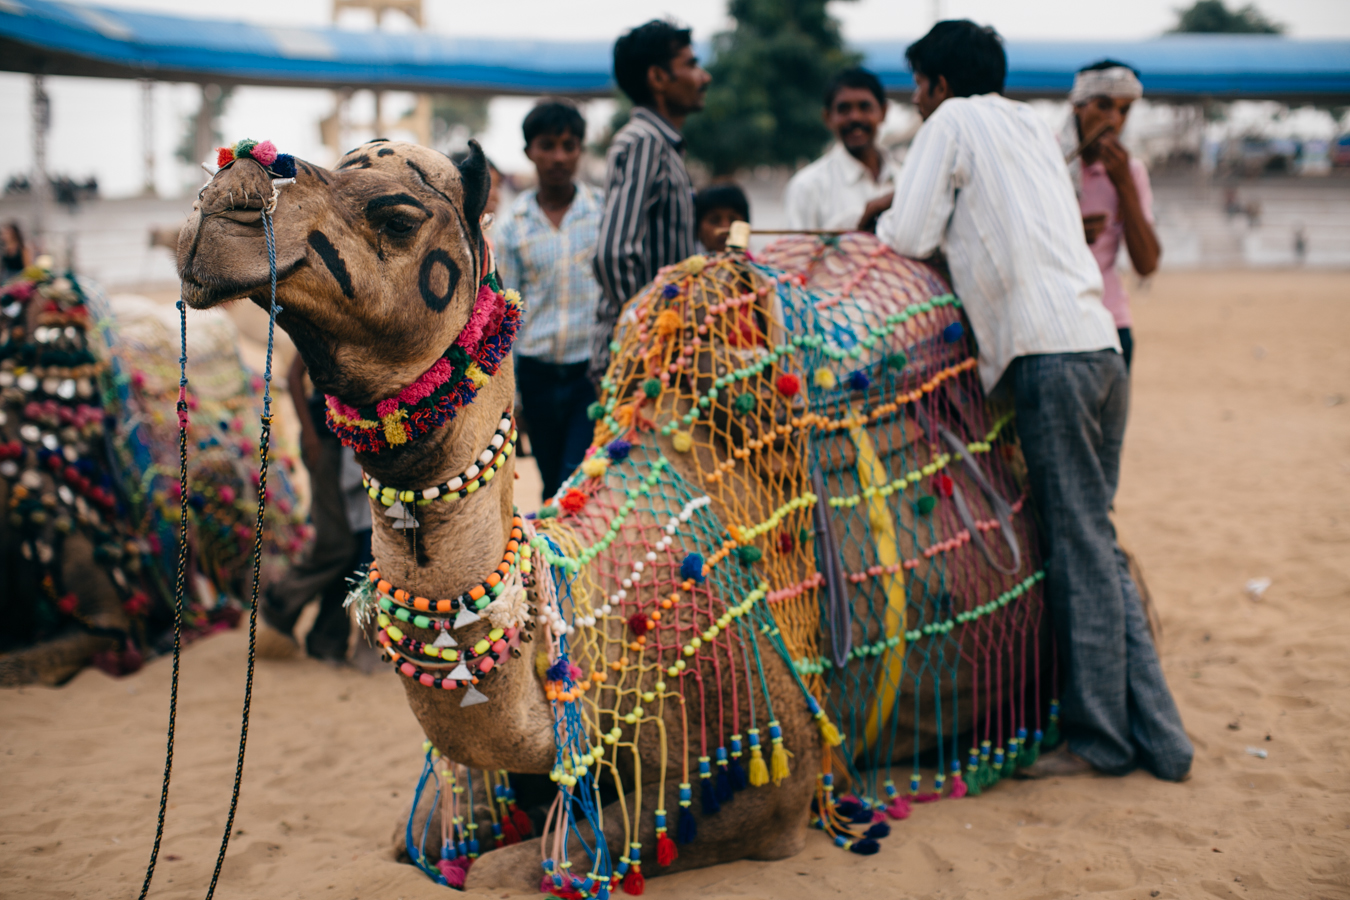 The Pushkar Camel Fair In Rajasthan, India 4